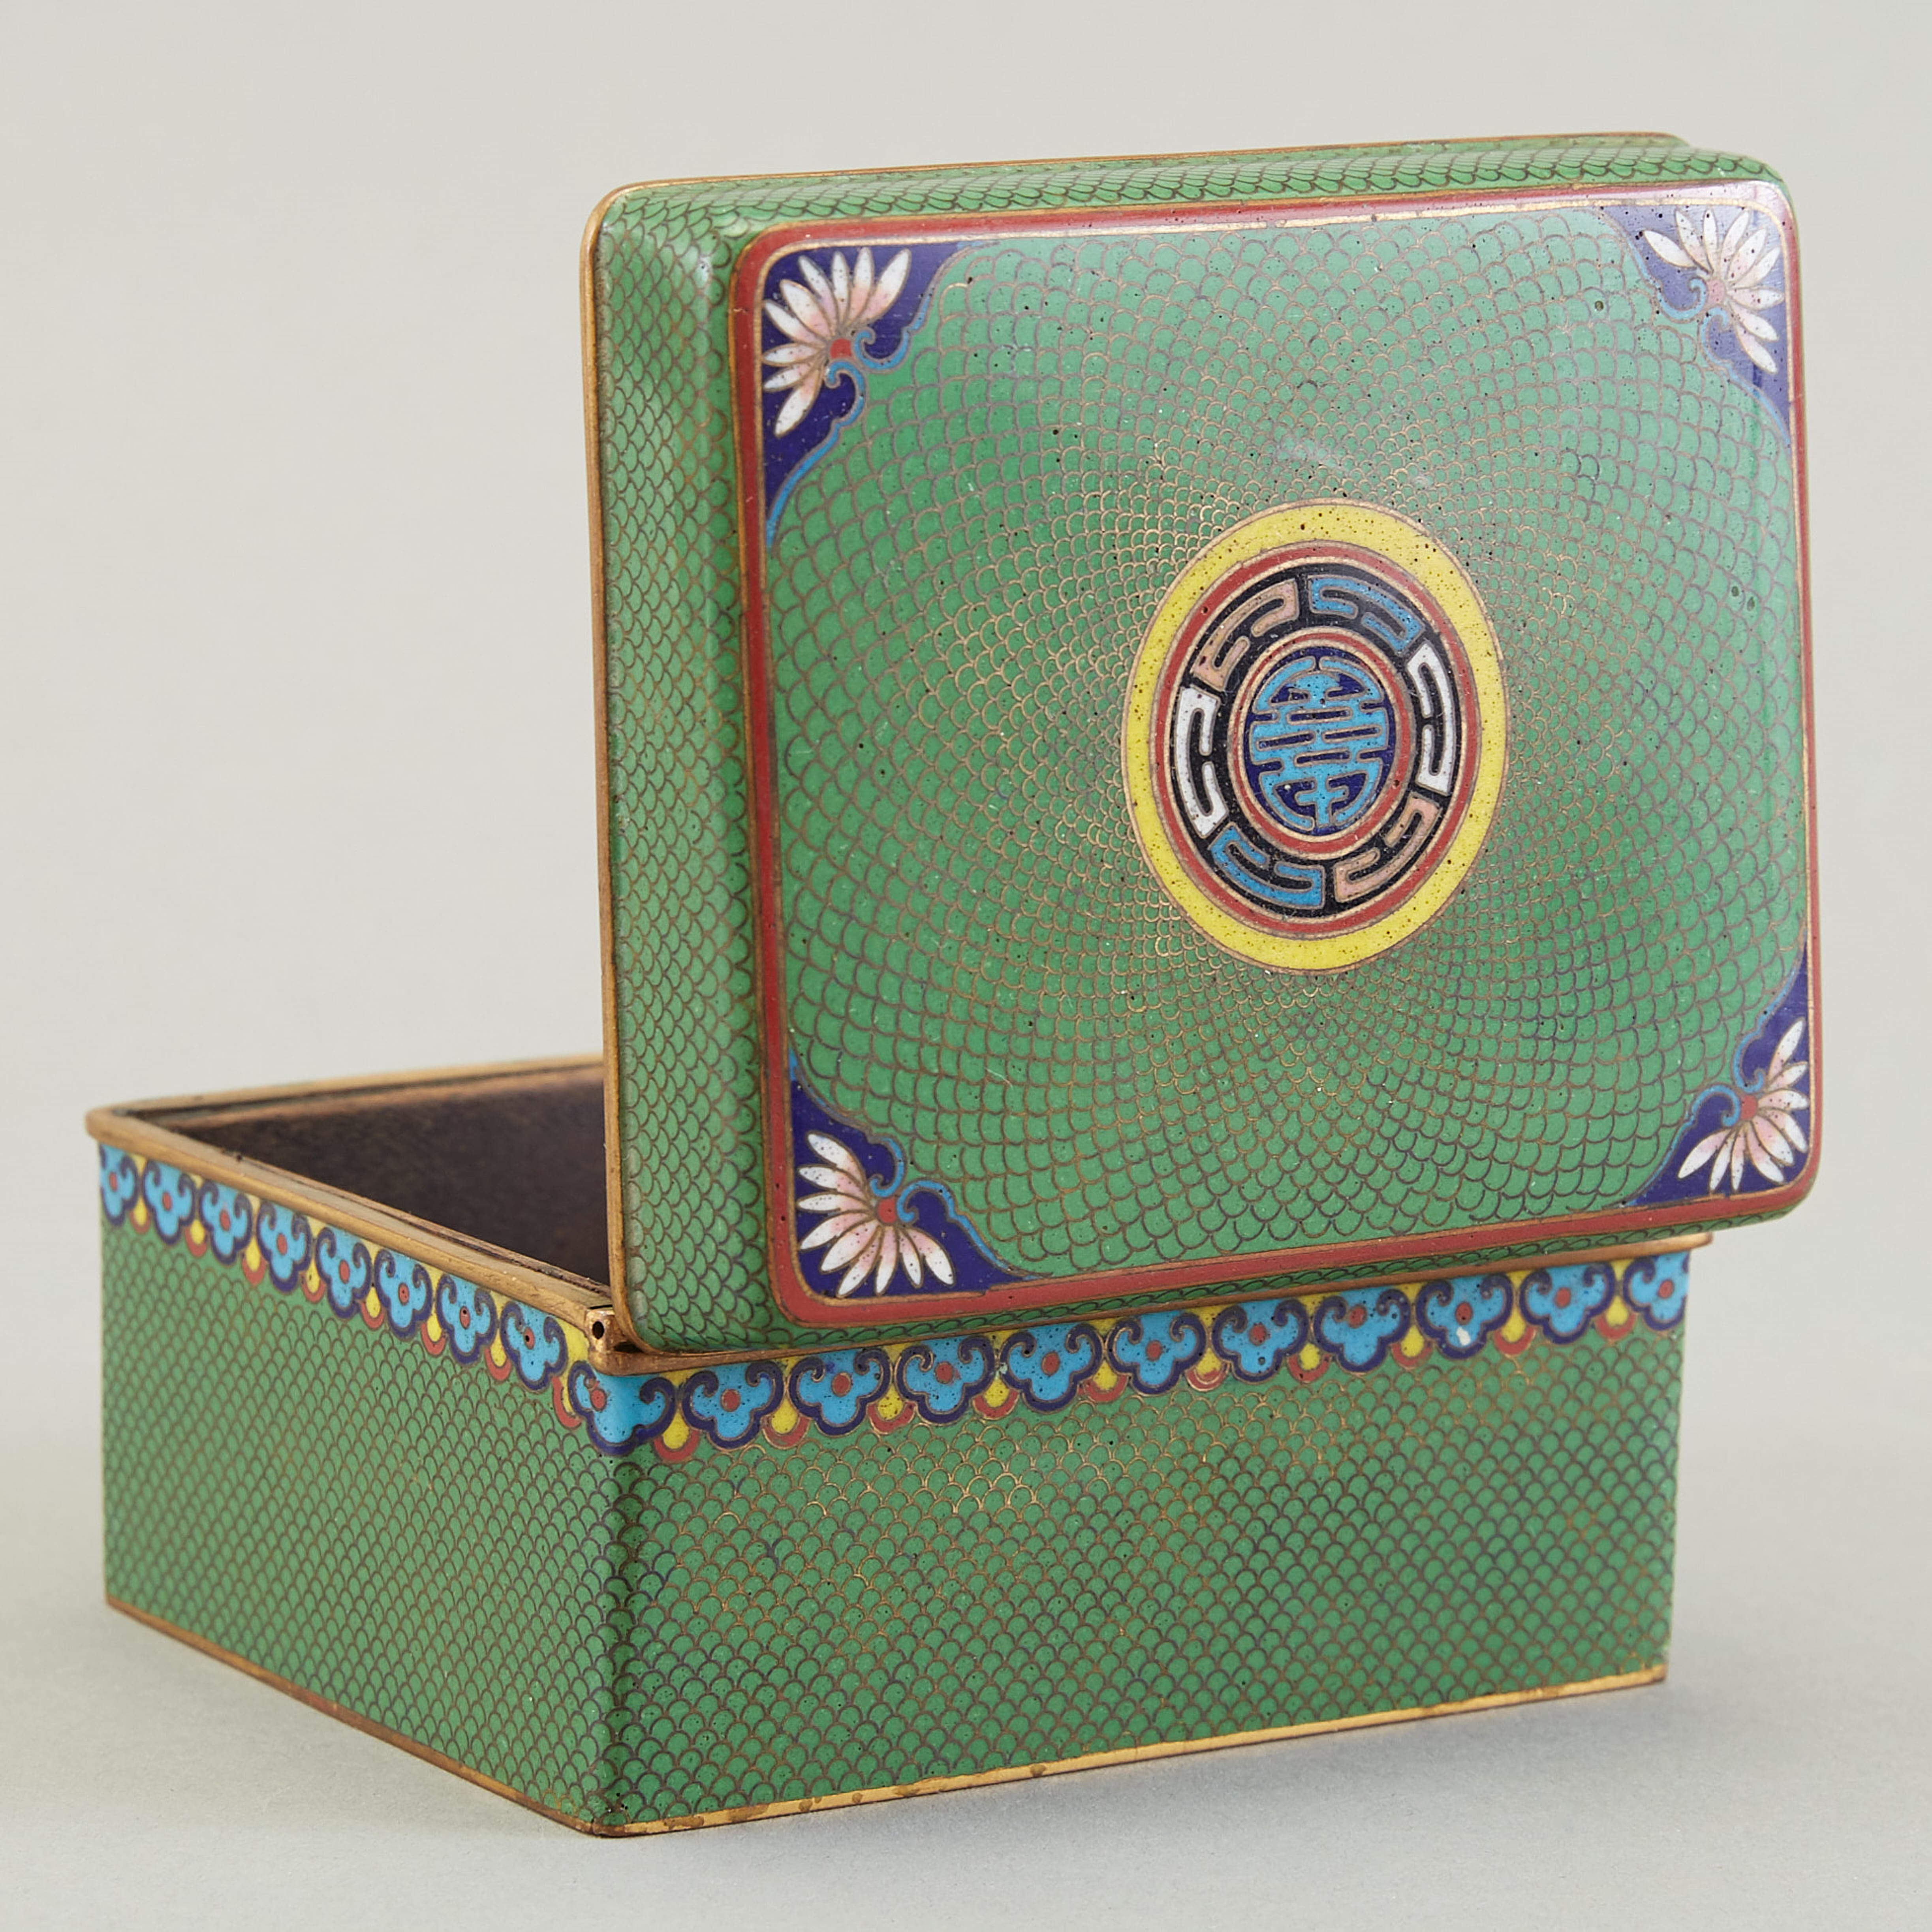 Lot 022: Japanese Meiji Cloisonne Box